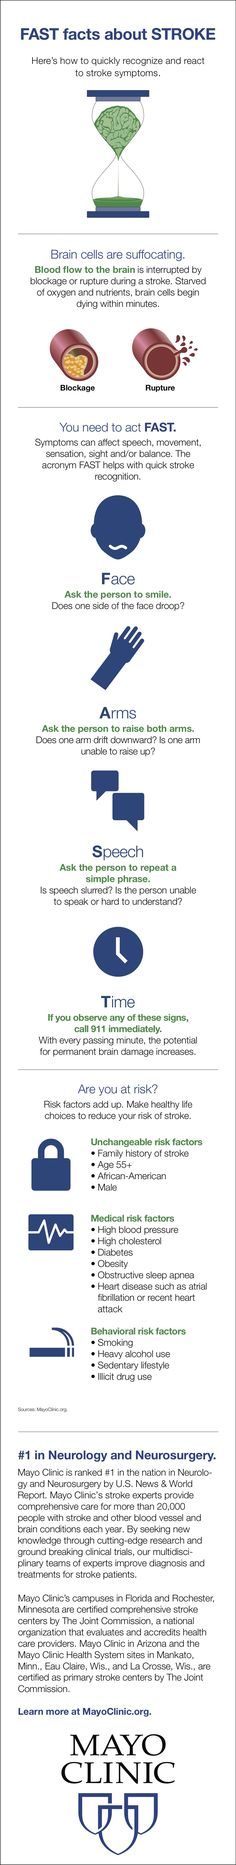 Learn how to quickly recognize and react to stroke symptoms.